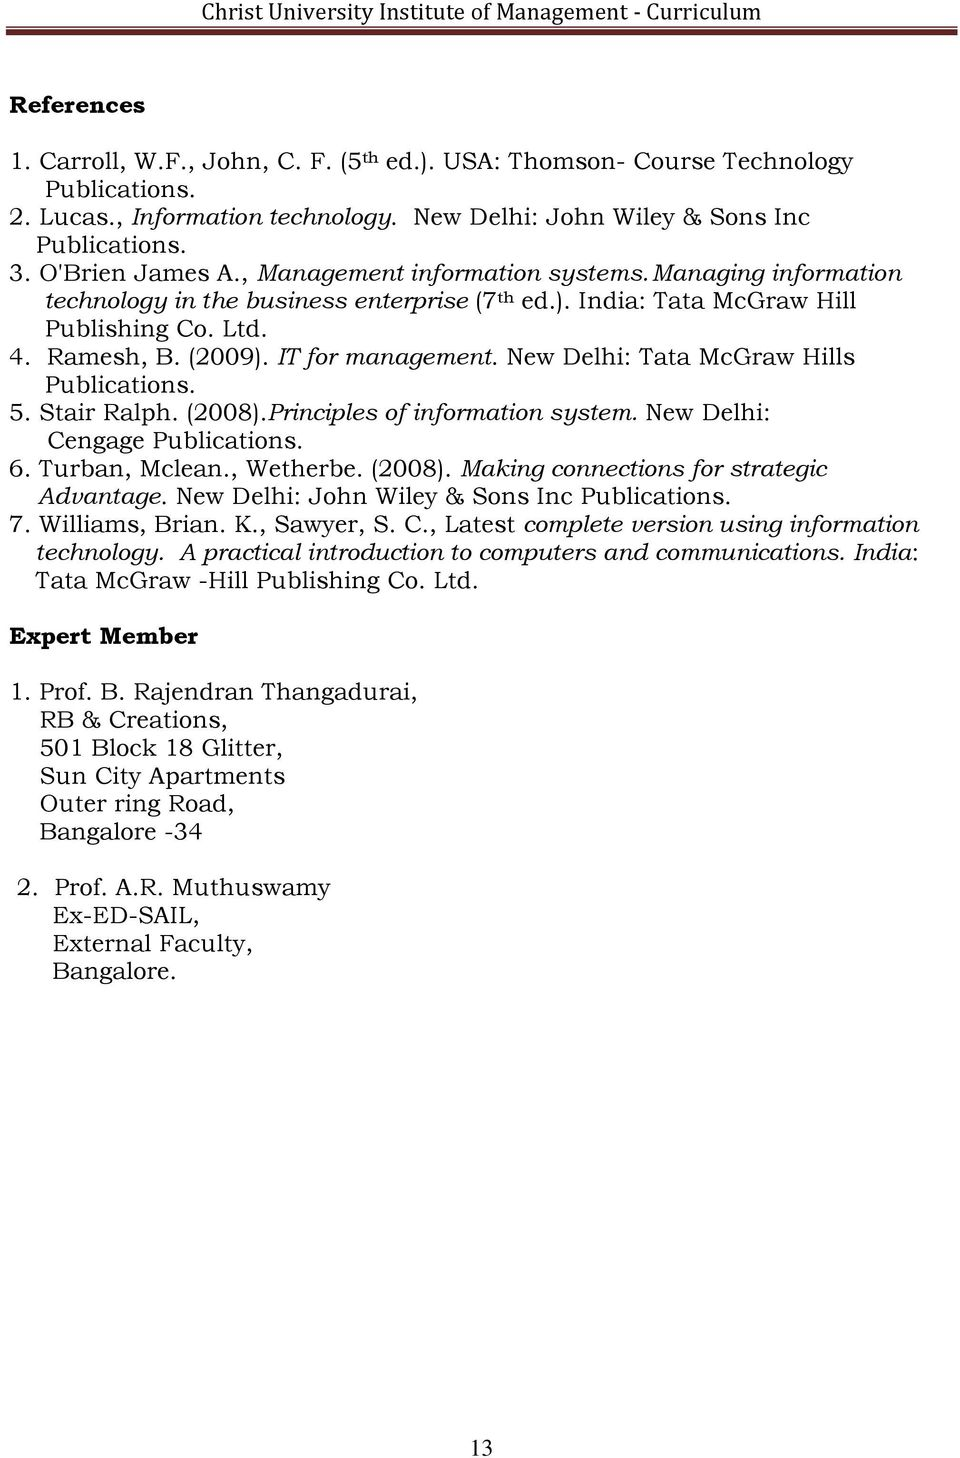 New Delhi: Tata McGraw Hills Publications. 5. Stair Ralph. (2008).Principles of information system. New Delhi: Cengage Publications. 6. Turban, Mclean., Wetherbe. (2008). Making connections for strategic Advantage.